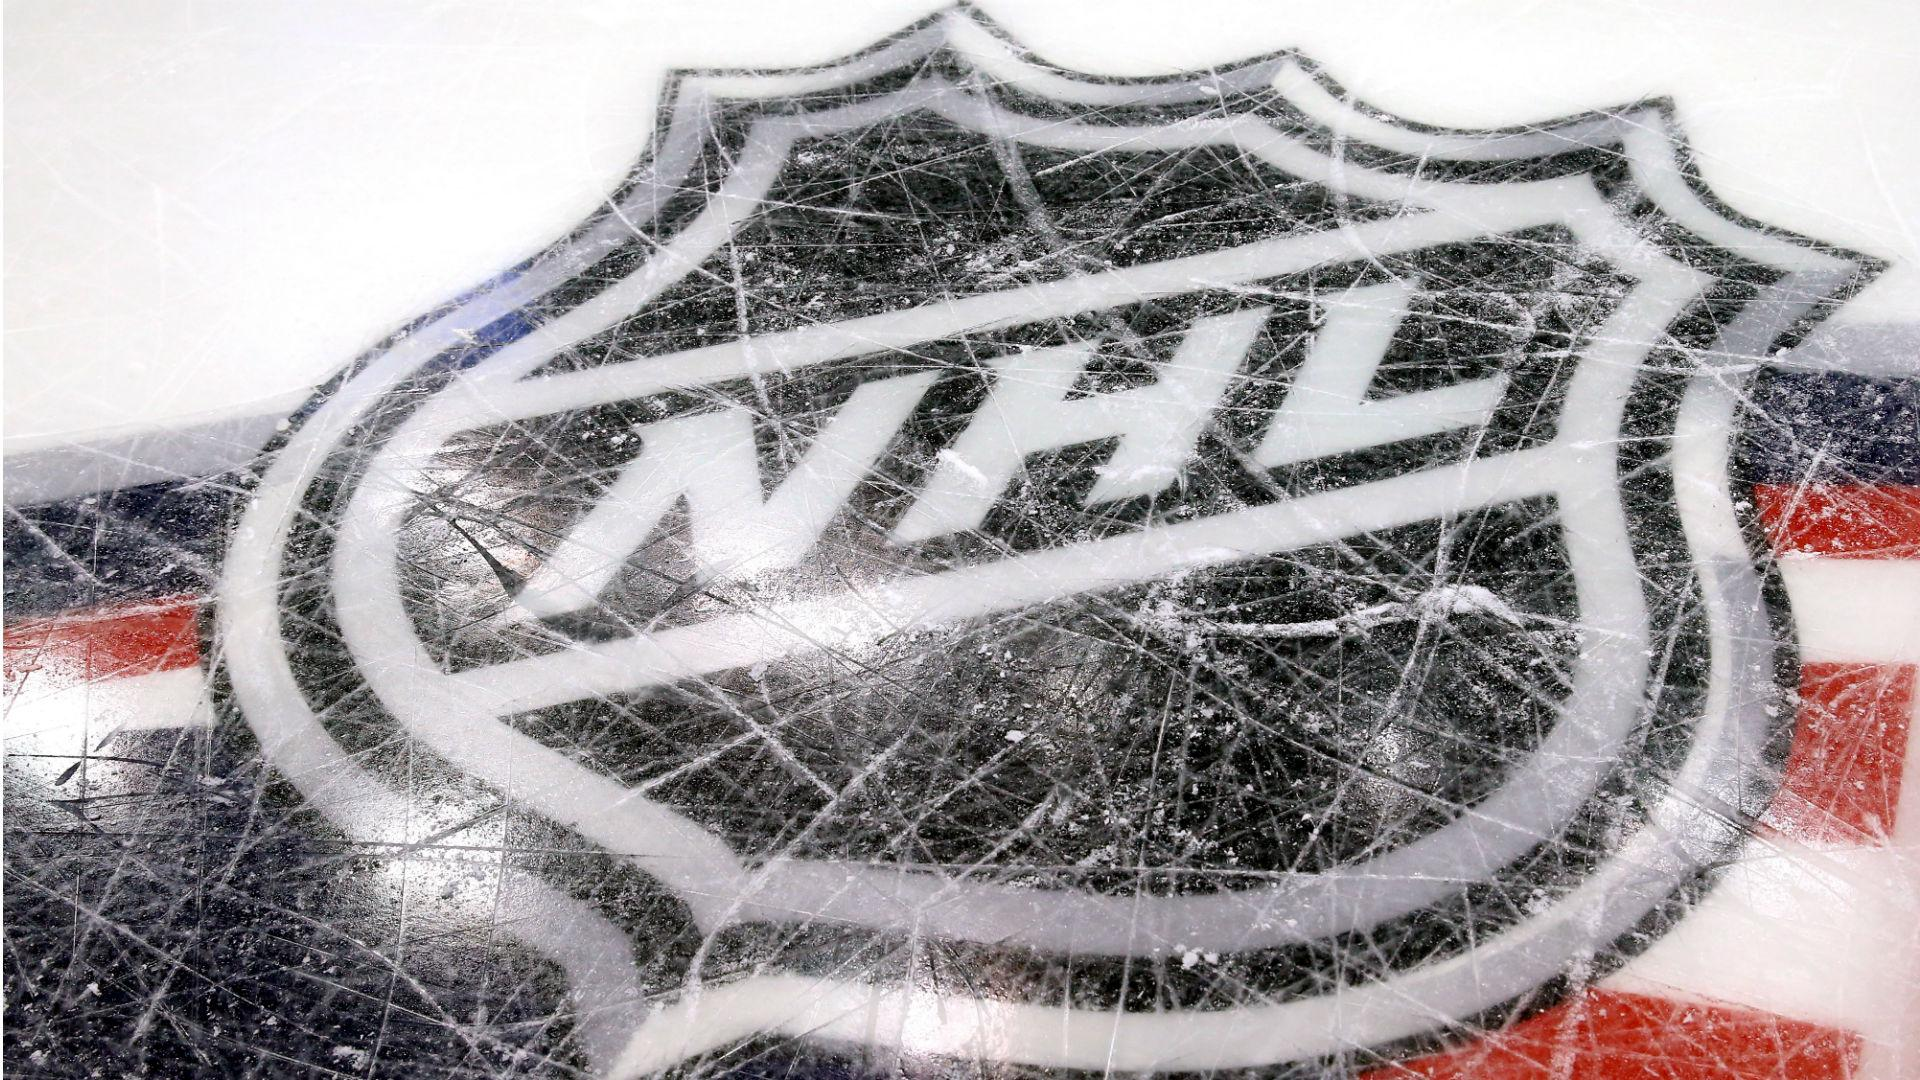 NHL STANDINGS PREDICTIONS FOR THE 2018/19 SEASON: METRO DIVISION